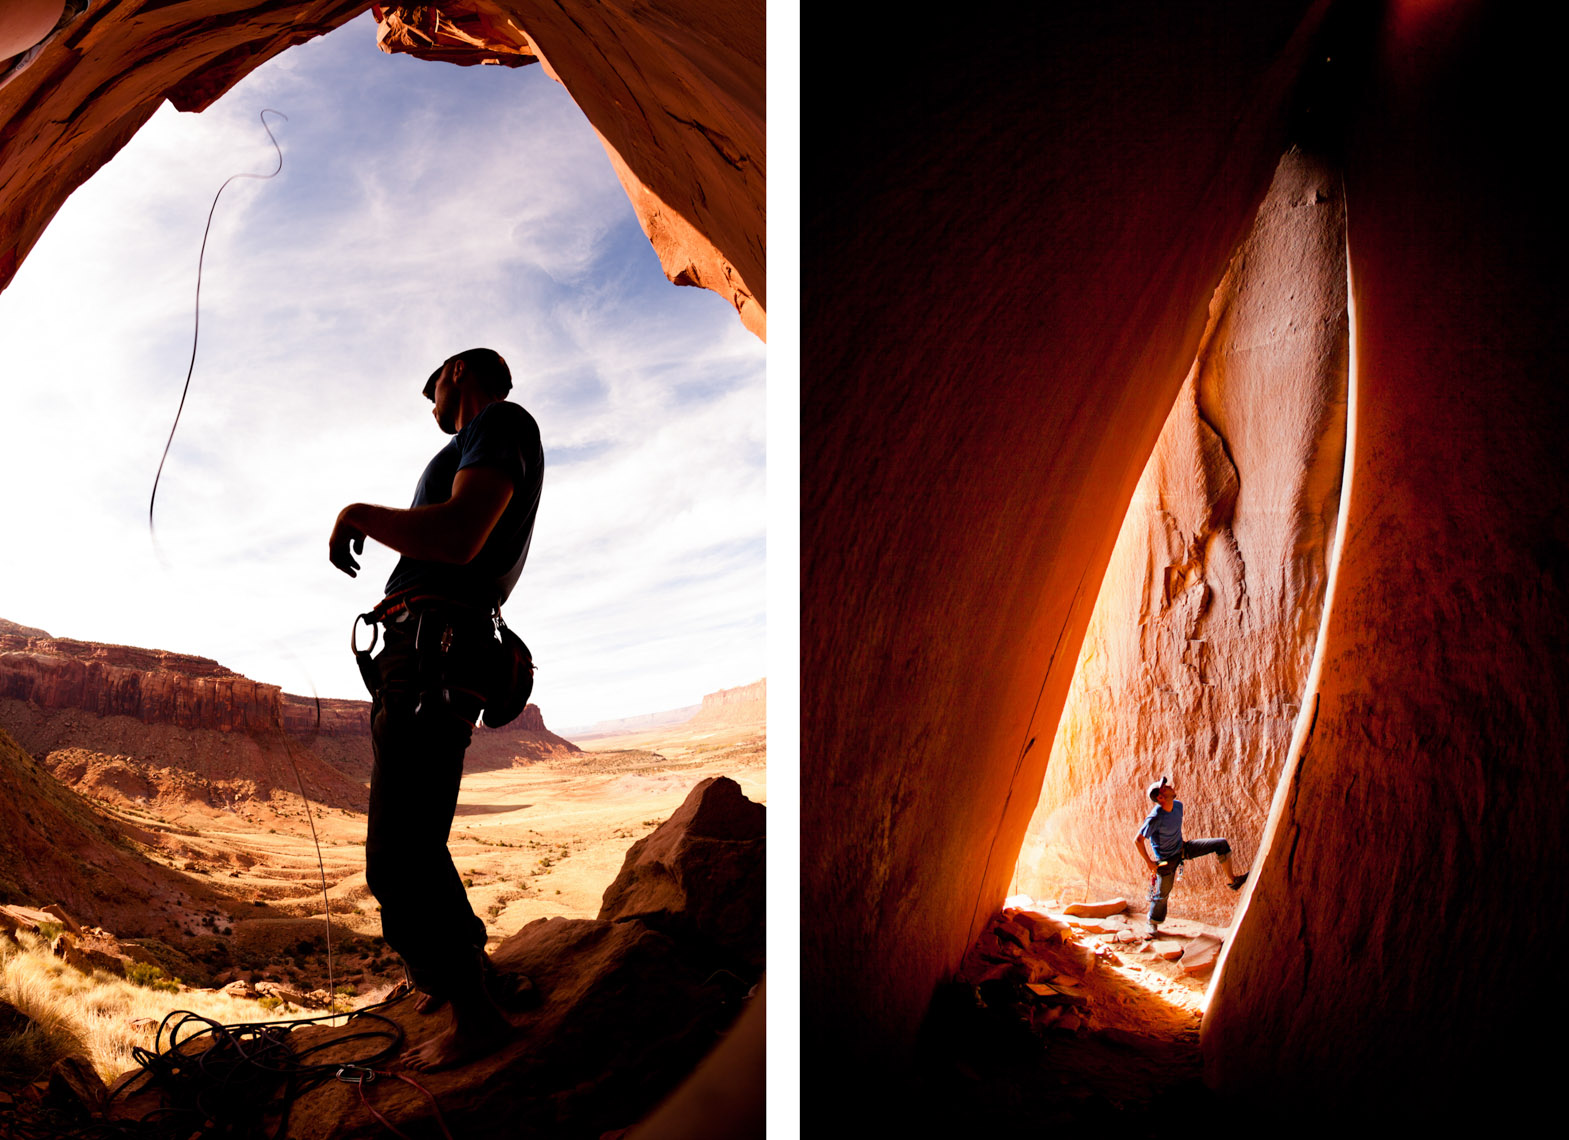 Blake Herrington rock climbing in Indian Creek, Utah photographed by Forest Woodward